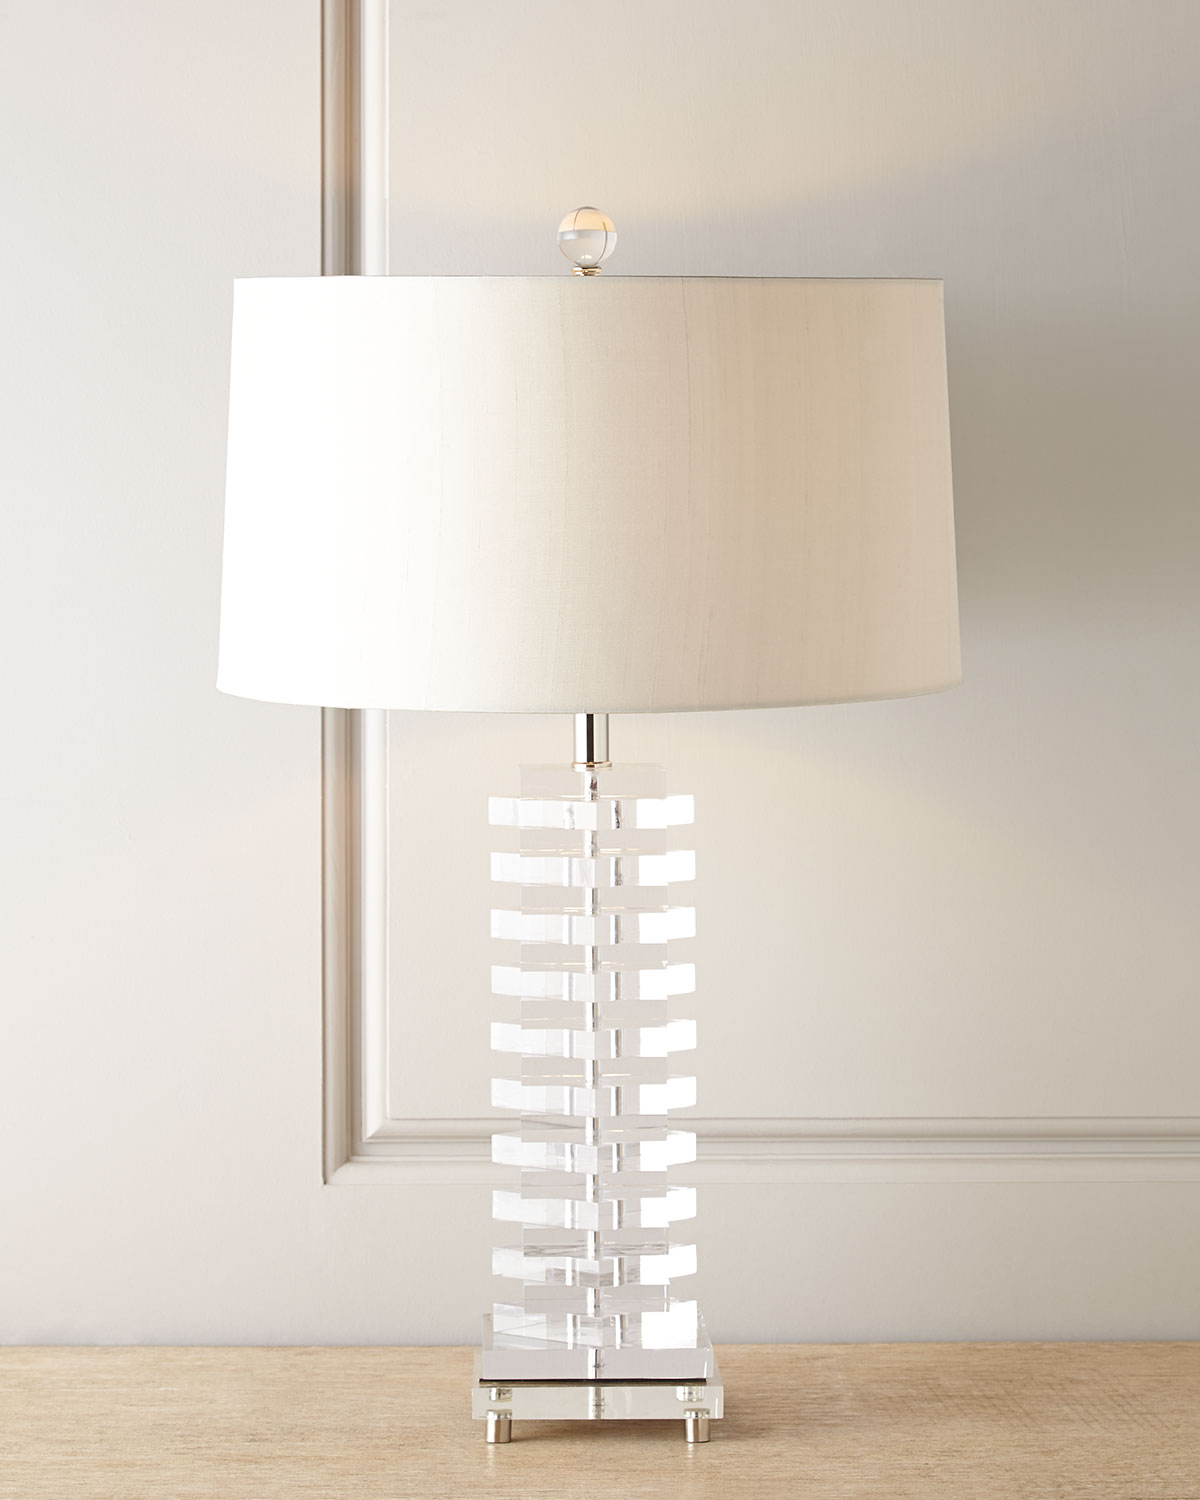 small clear ginkgo lamp lamps finish brushed nickel crystal size ceiling catalog lighting homeware en lights shiny and